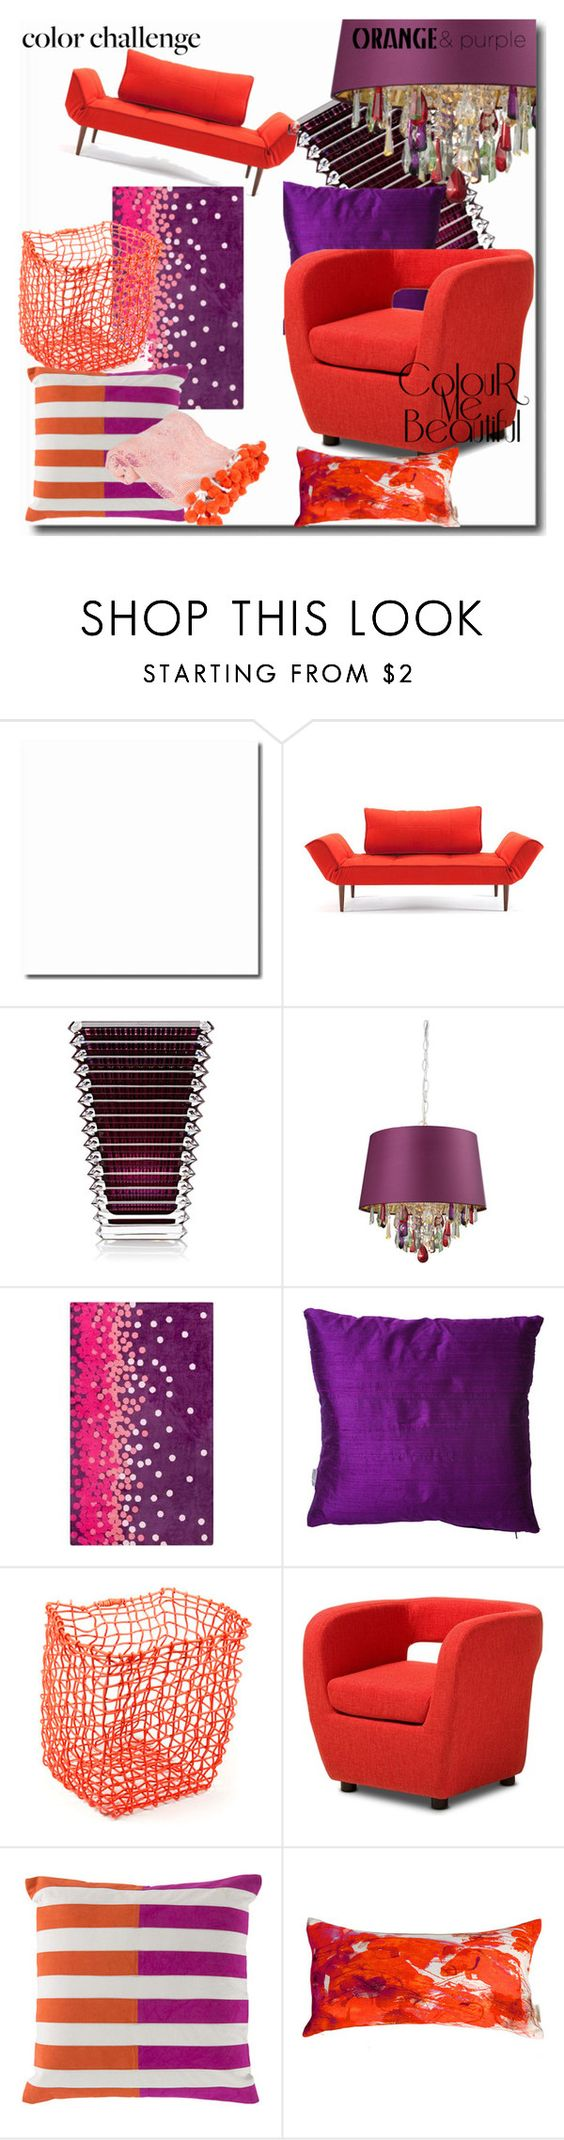 """""""Orange and Purple"""" by angy-beurskens ❤ liked on Polyvore featuring interior, interiors, interior design, home, home decor, interior decorating, Baccarat, Surya, Heal's and Baxton Studio"""